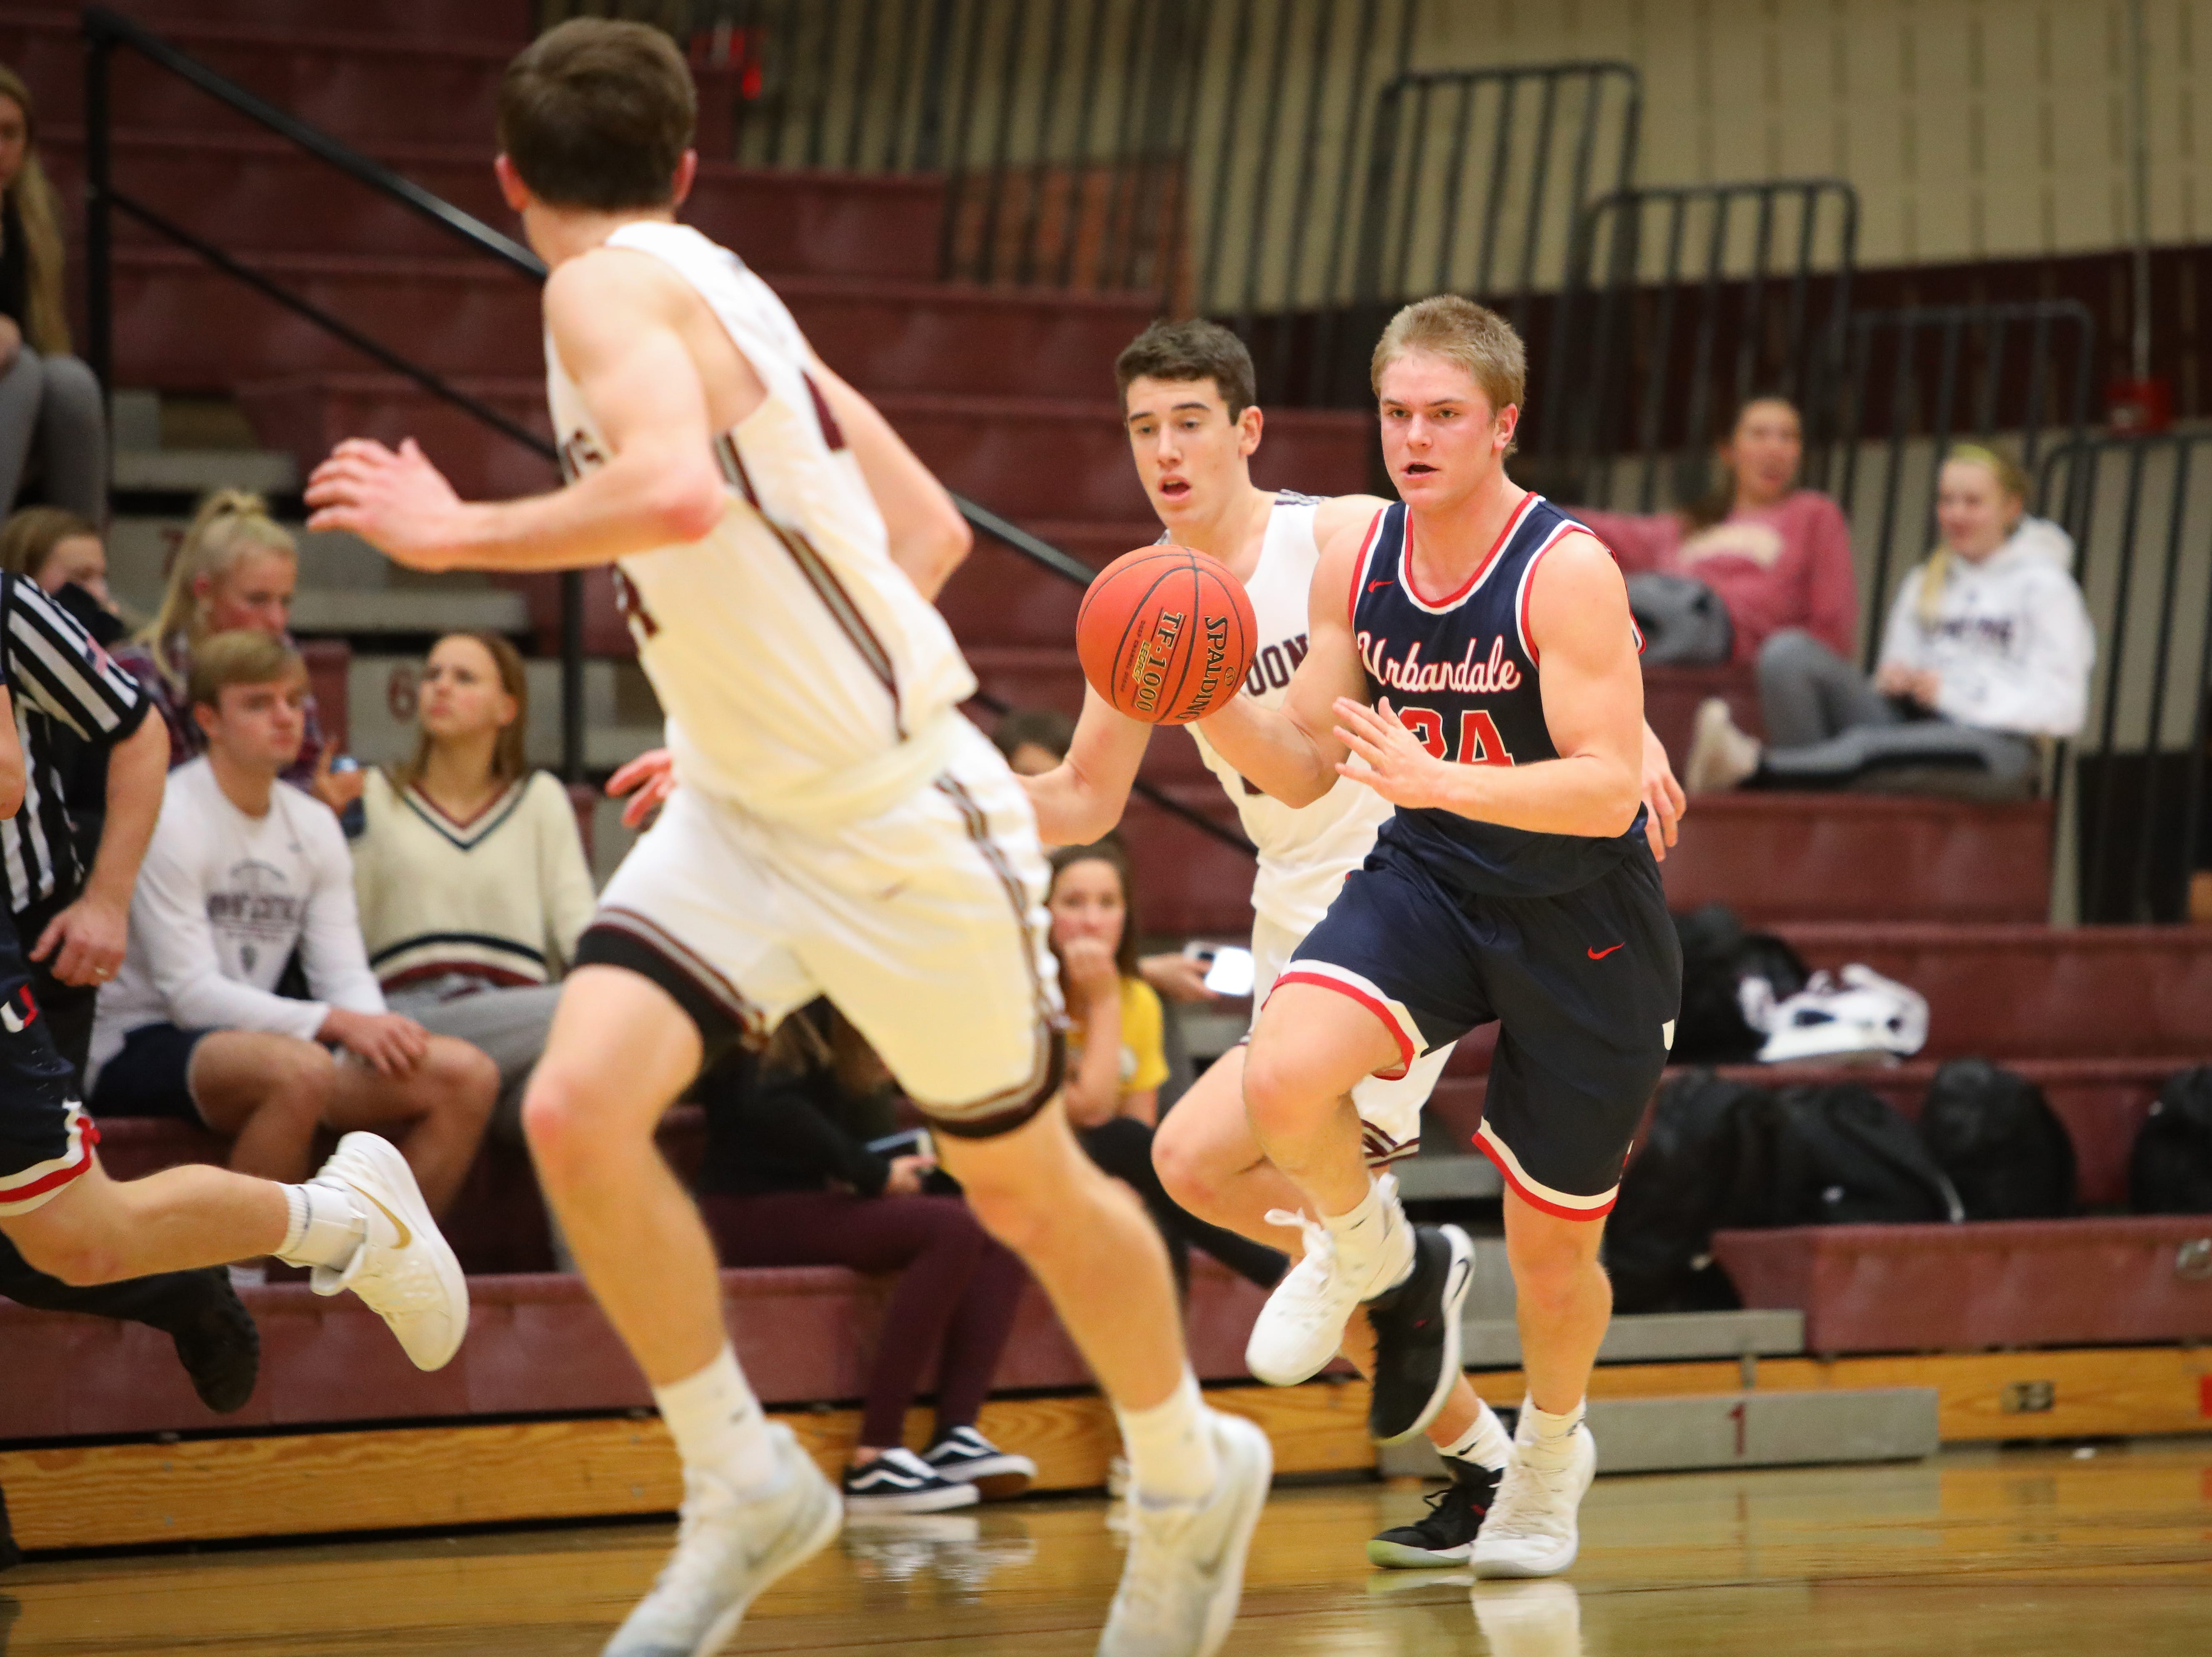 Urbandale senior Will Pattison brings the ball up the court past Dowling during a boys high school basketball game between the Urbandale J-Hawks and the Dowling Catholic Maroons at Dowling Catholic High School on Jan. 11, 2019 in West Des Moines, Iowa.